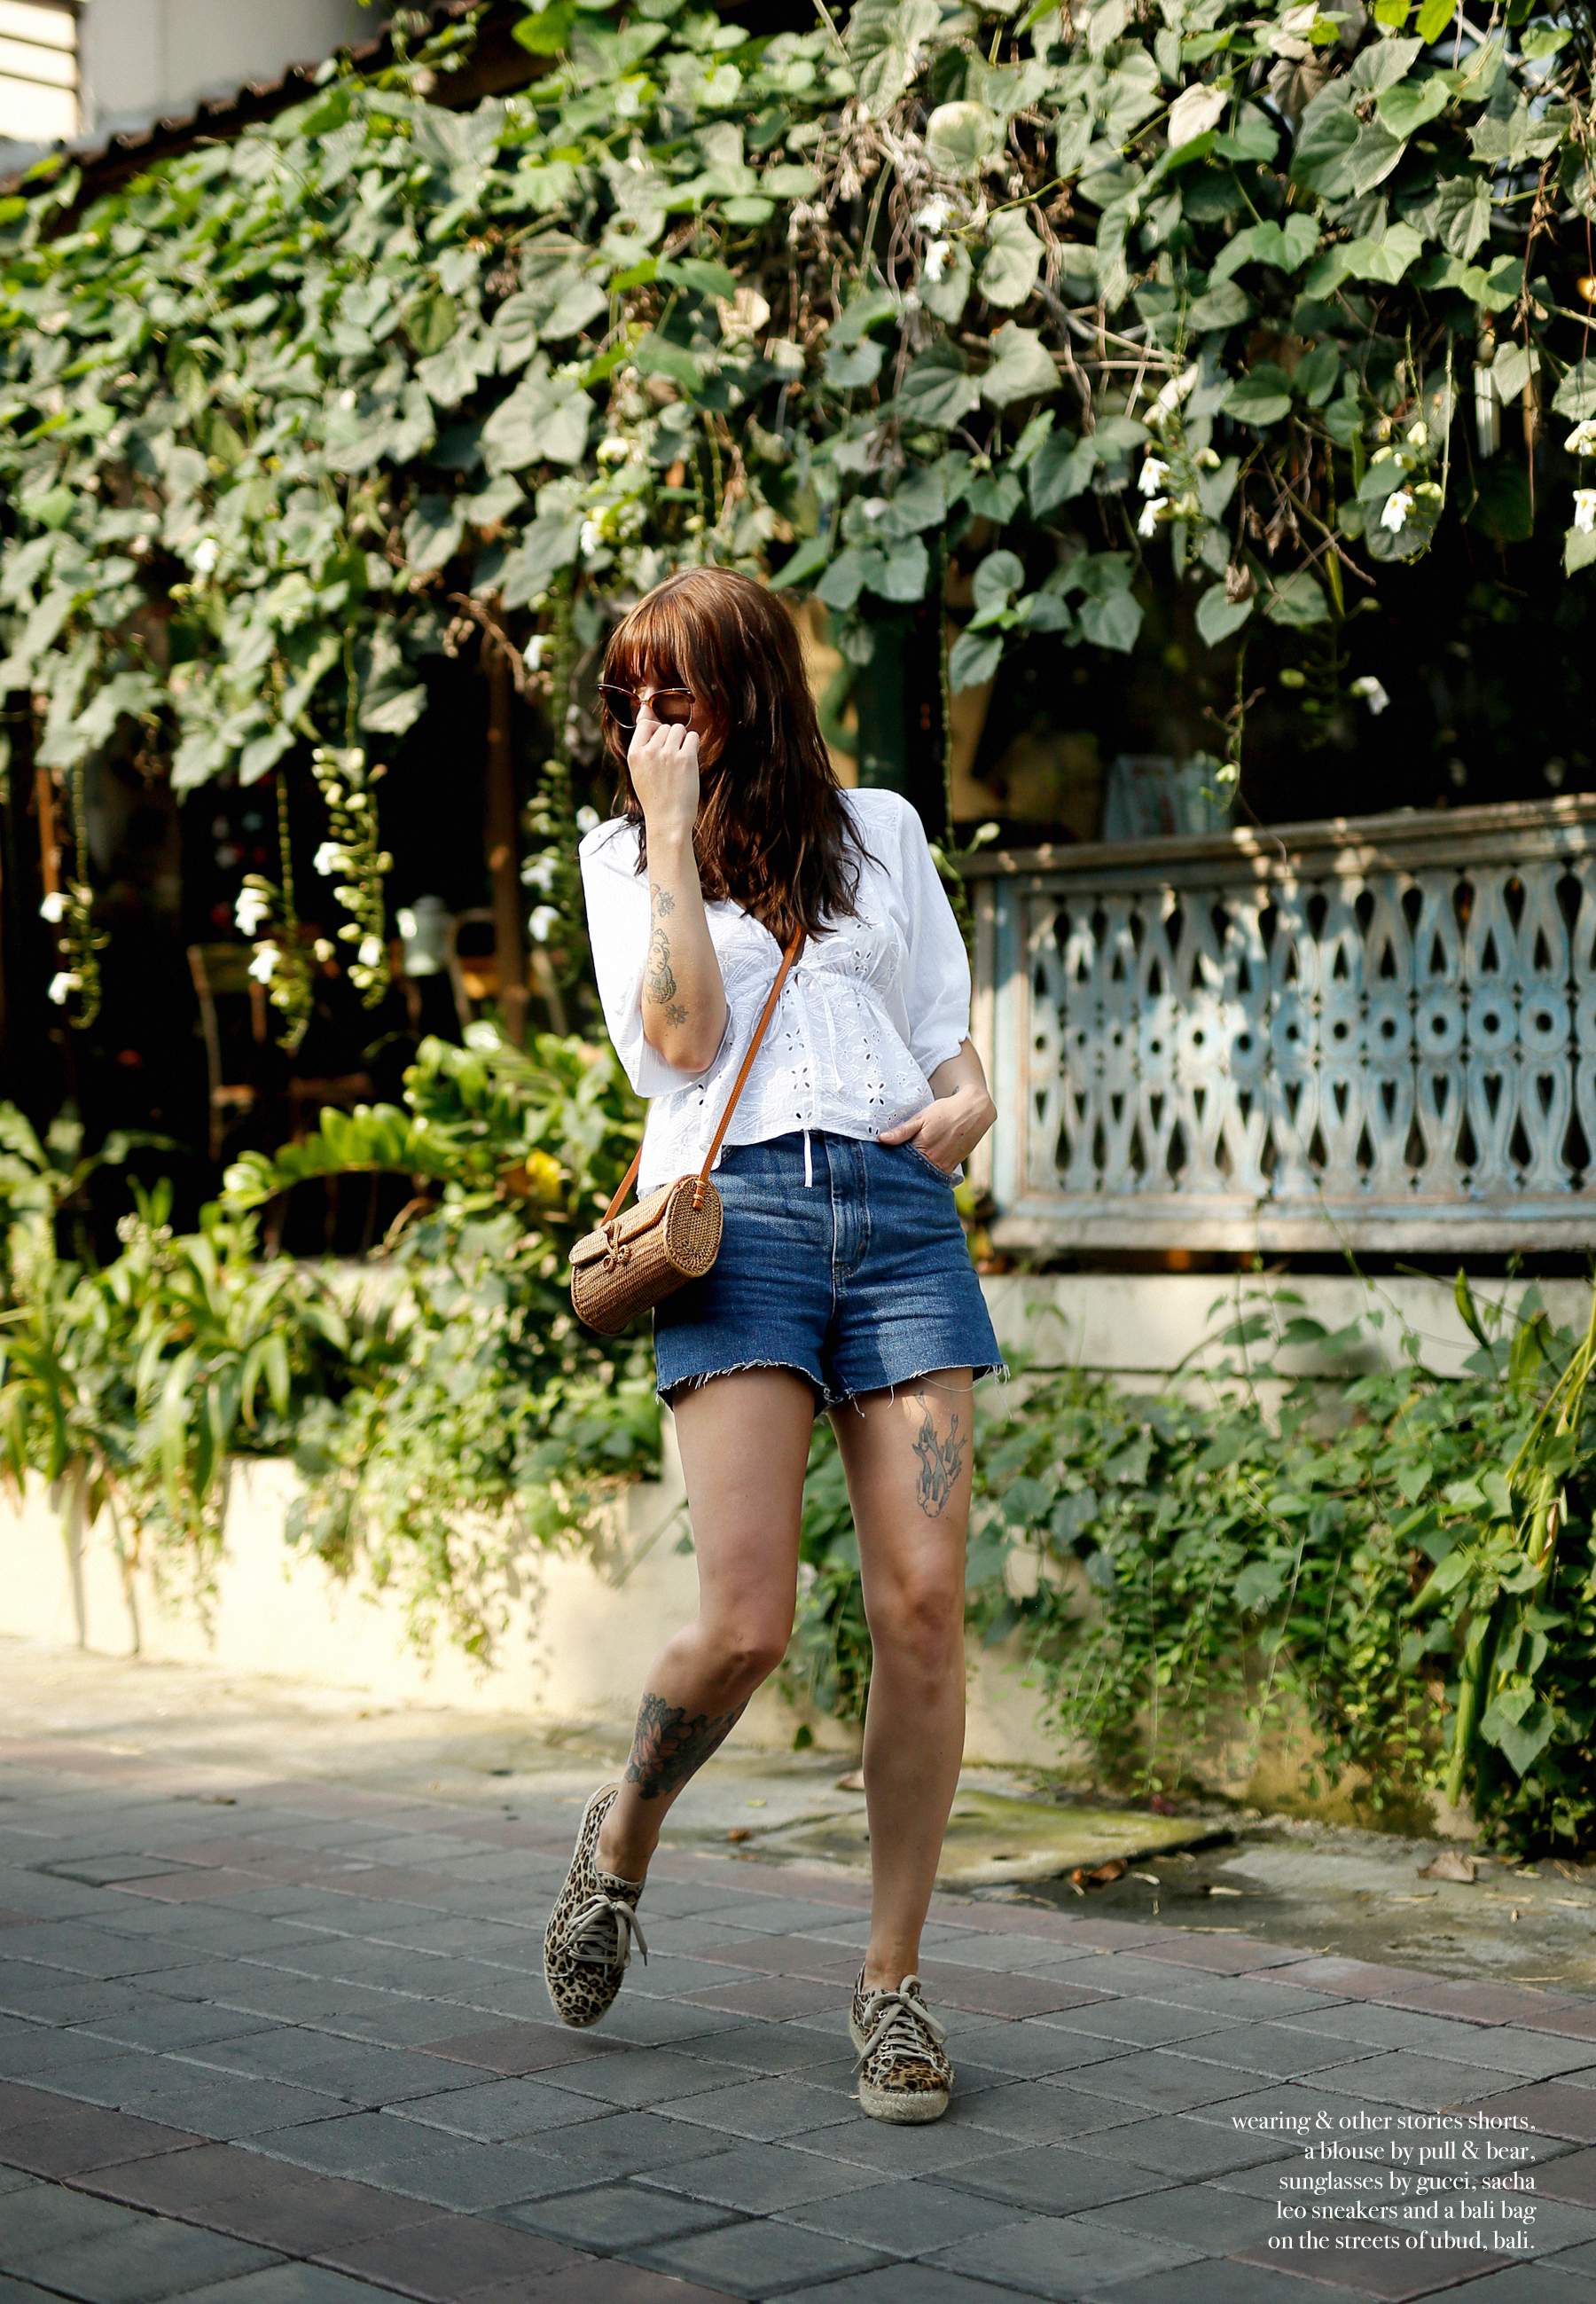 outfit bali denim shorts & other stories pull and bear blouse gucci sunglasses sacha shoes ubud styling style art market modeblogger travelblogger outfitblog ricarda schernus max bechmann 5